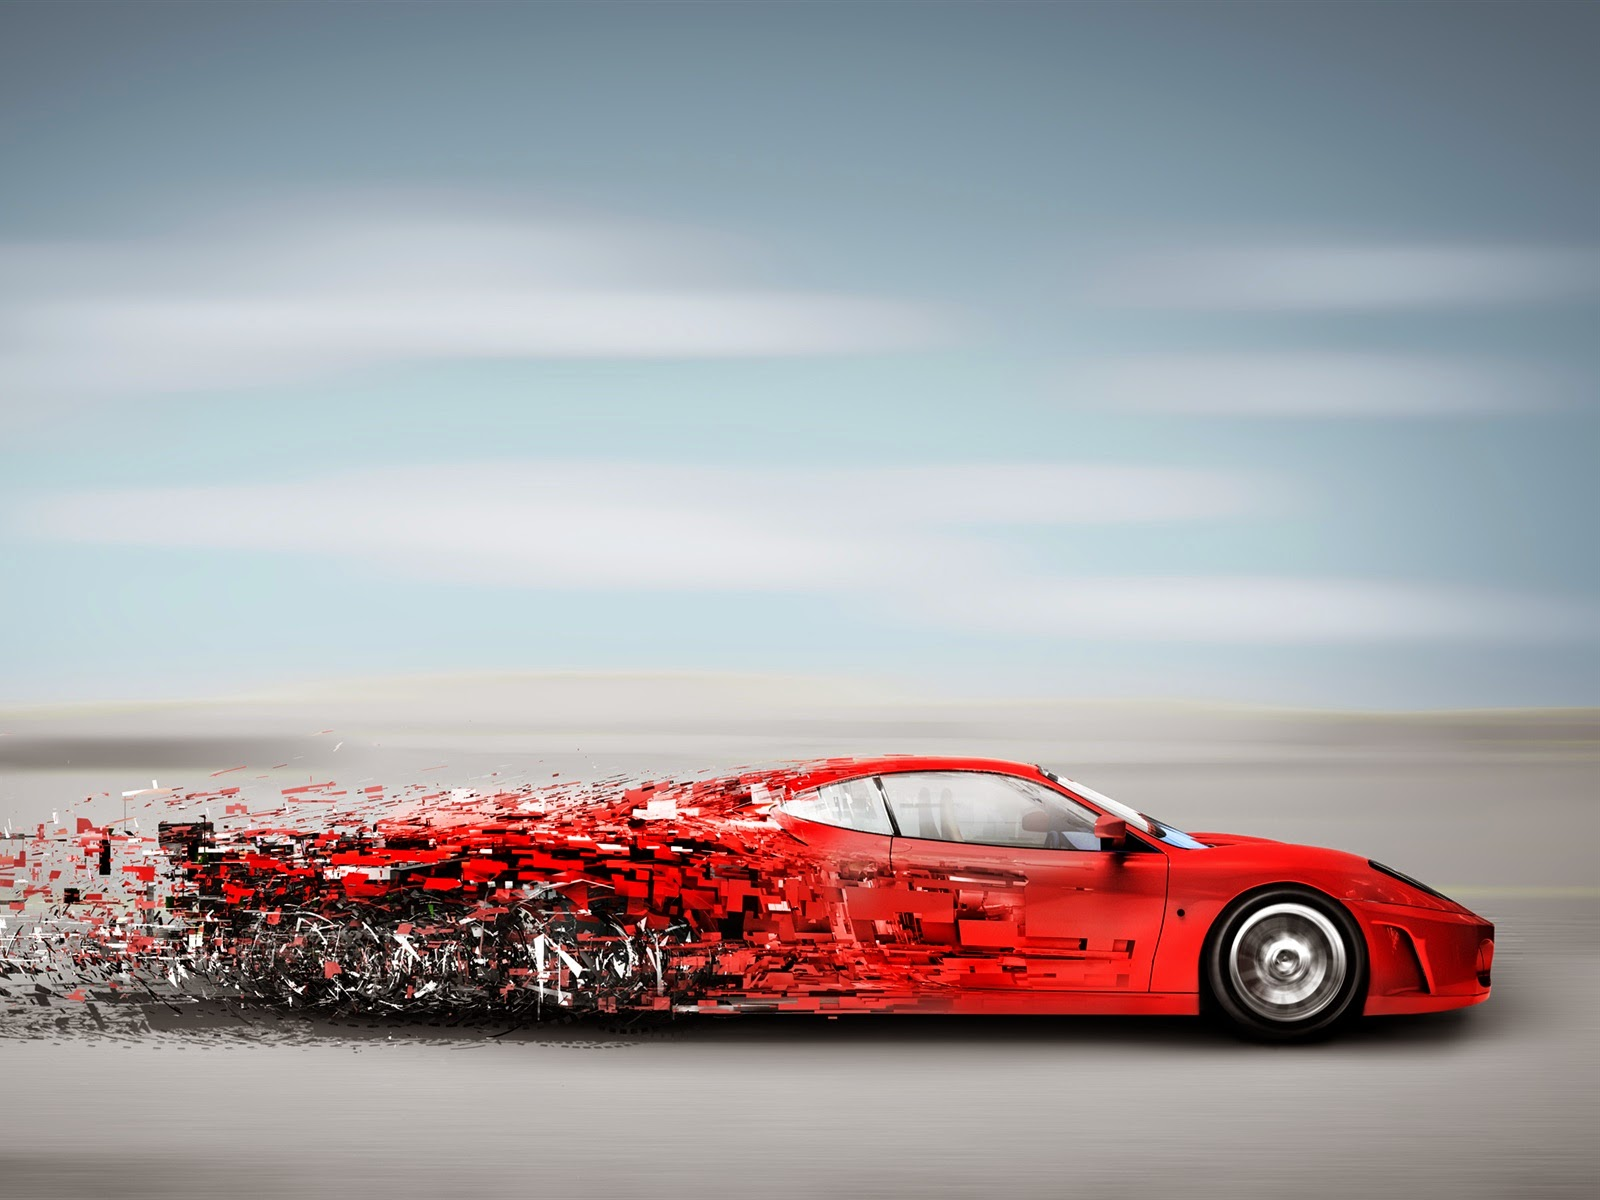 Fast Moving Cars HD Wallpapers For PC - Online Fun